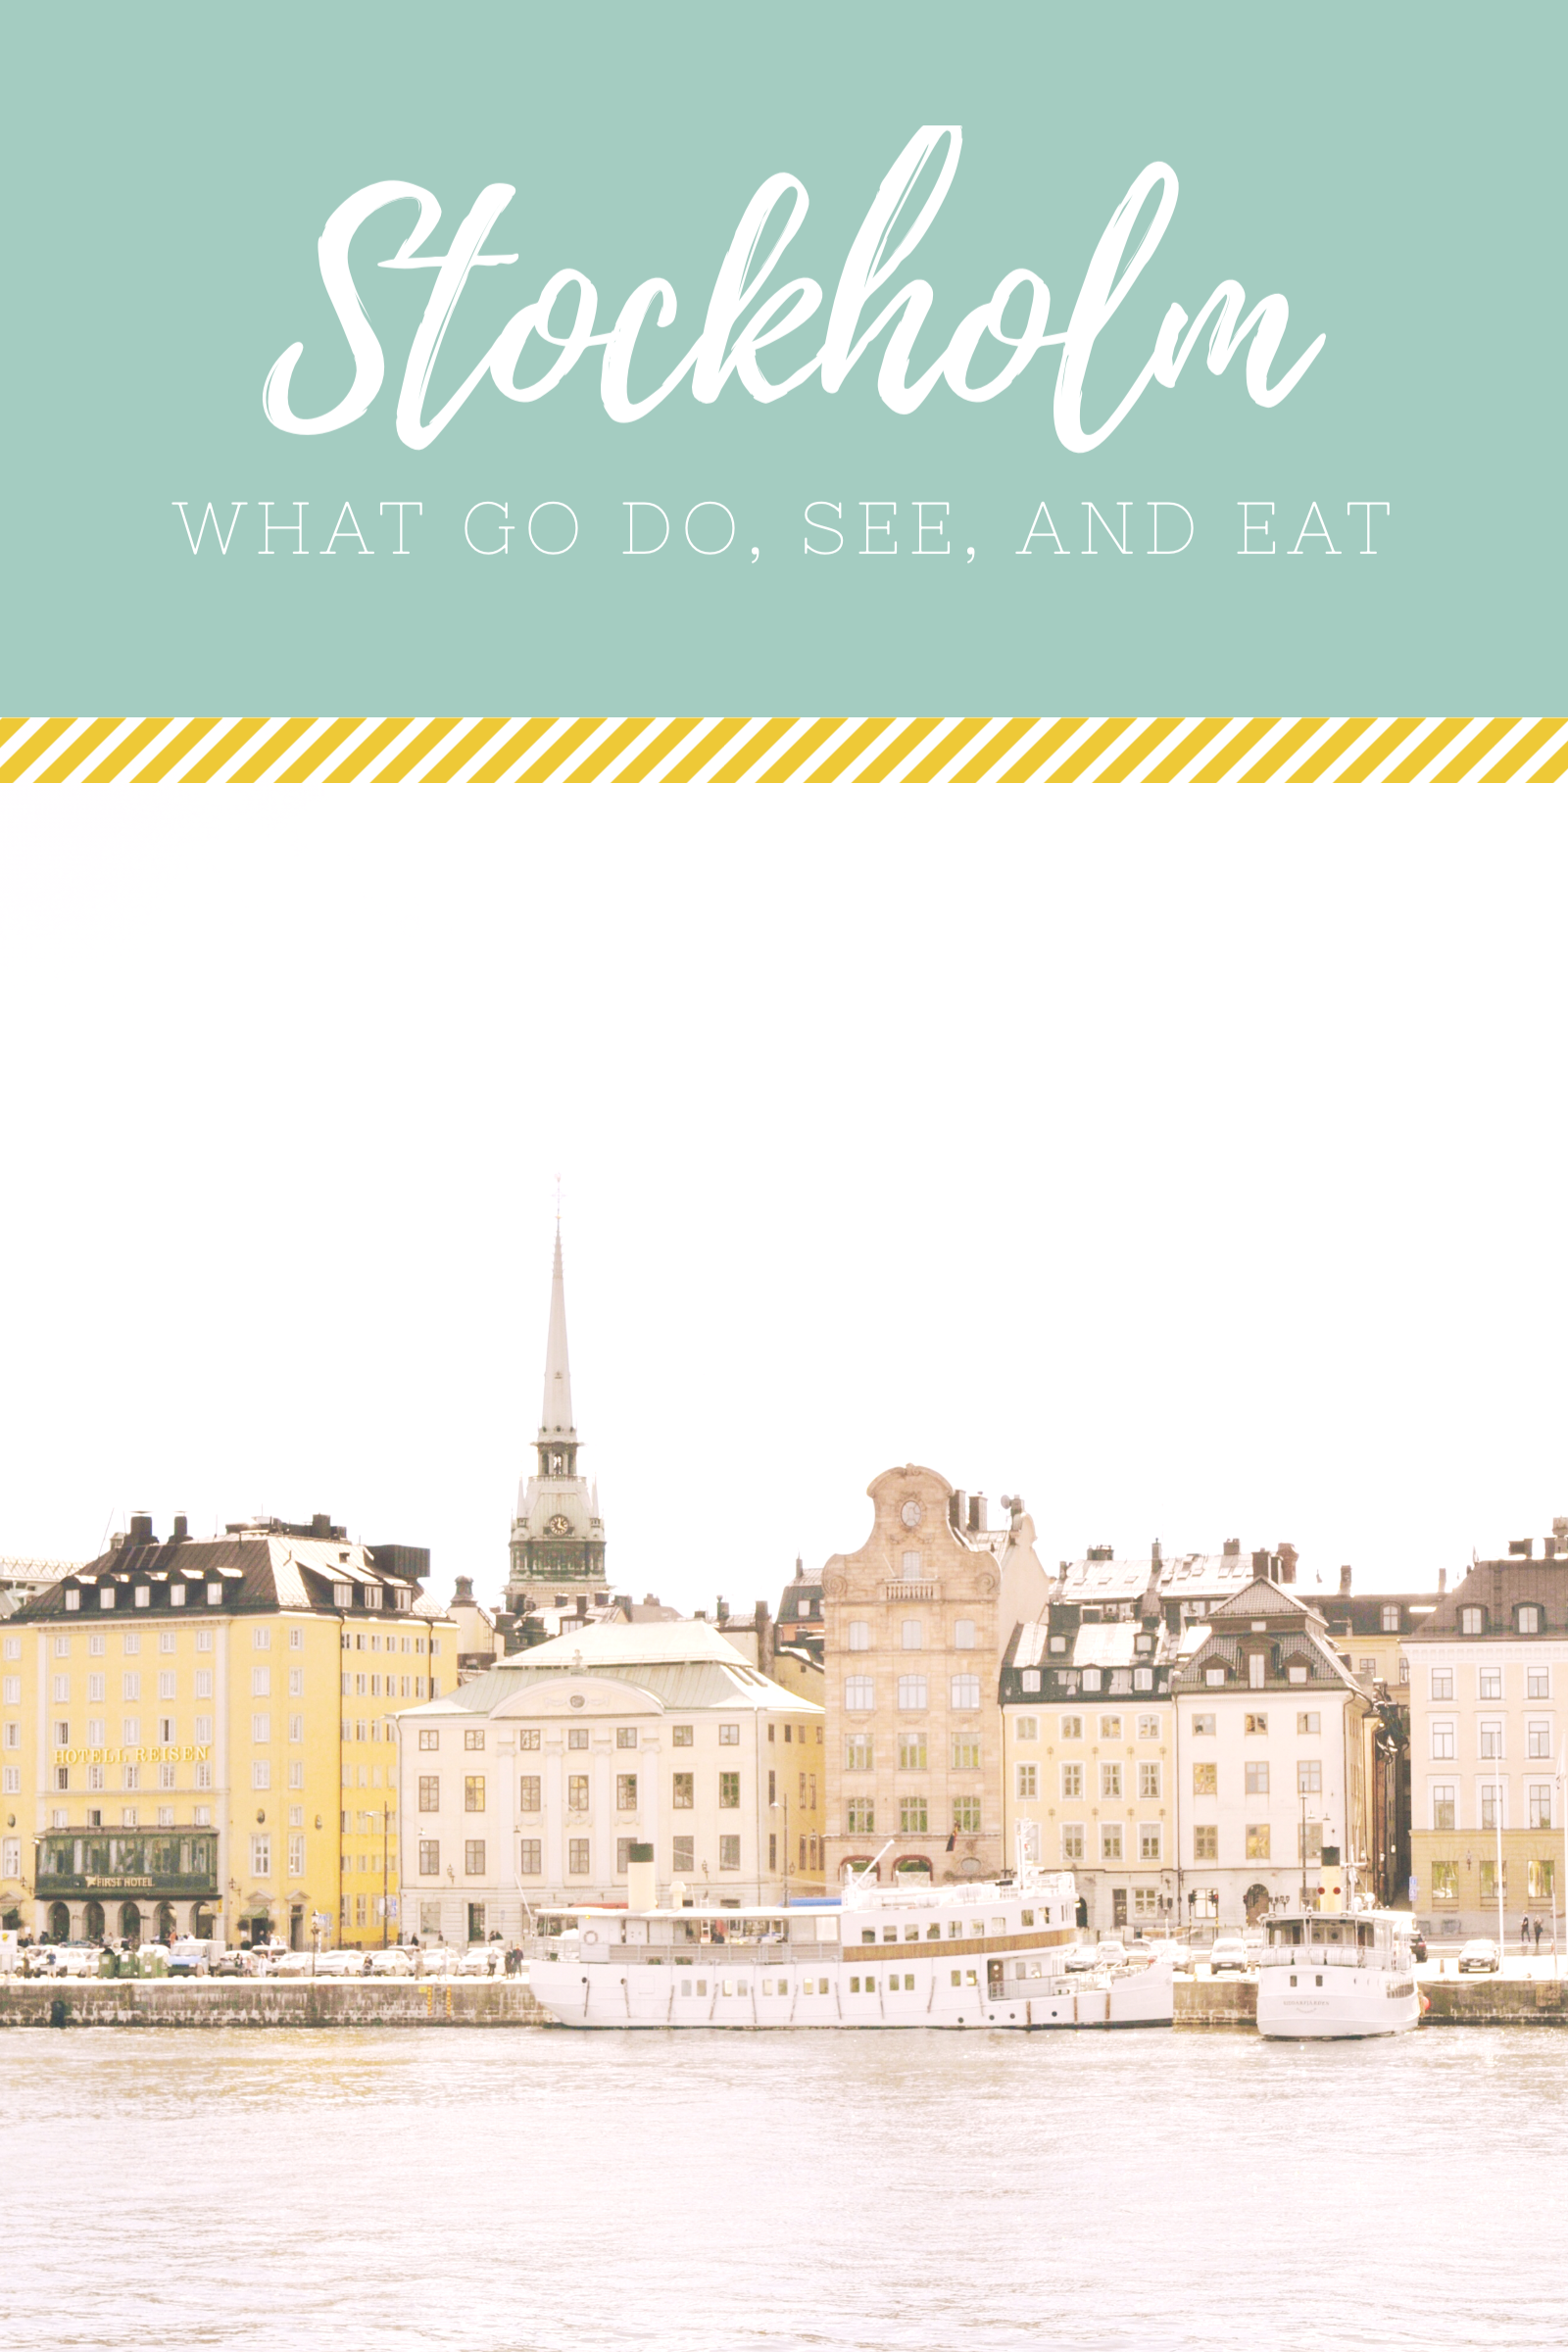 4 days in Stockholm: Things to Do, See, and Eat